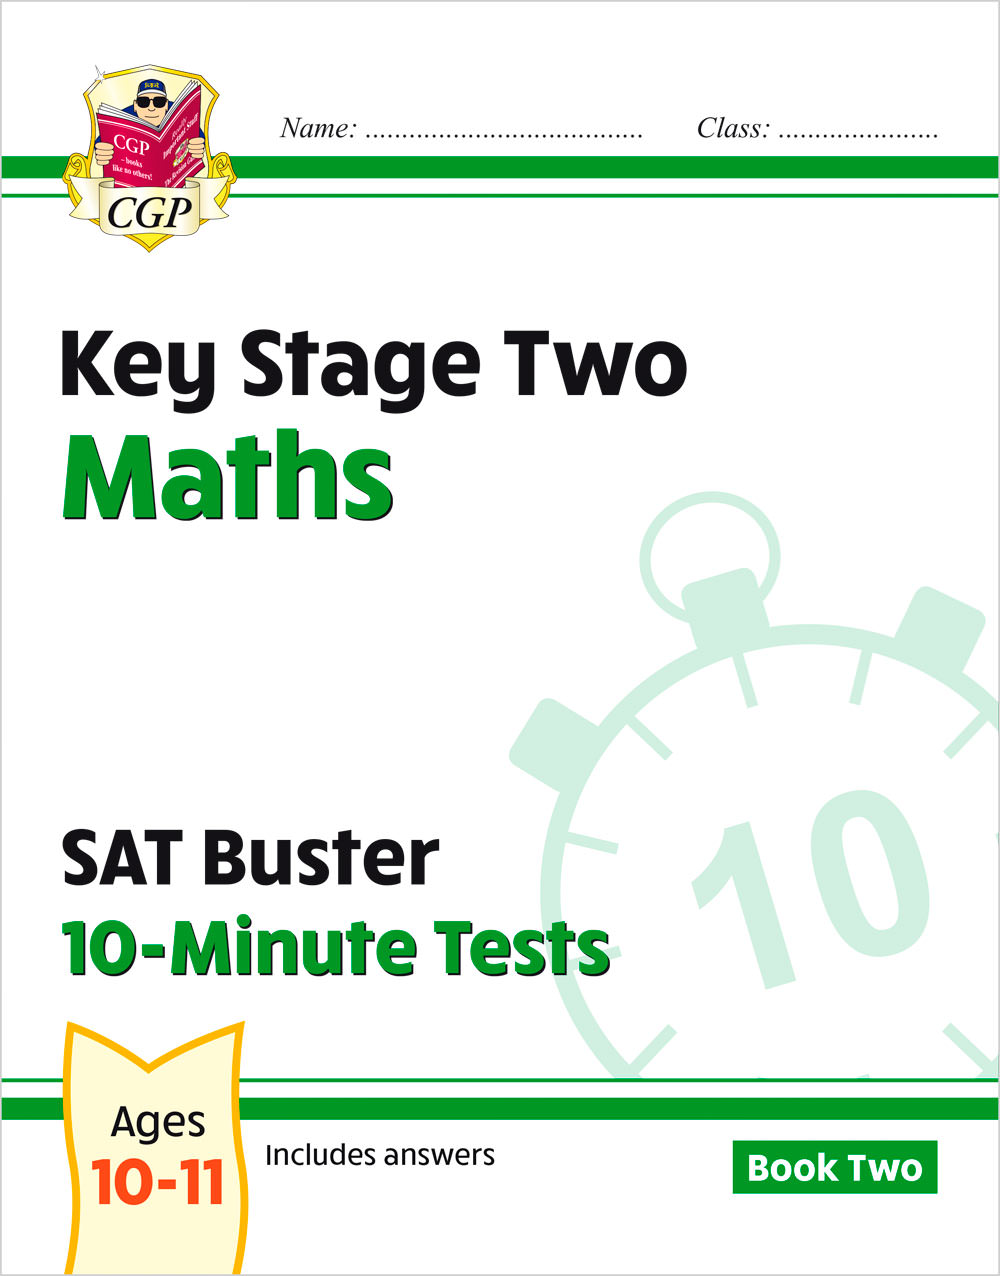 MXP222 - New KS2 Maths SAT Buster 10-Minute Tests - Book 2 (for the 2020 tests)